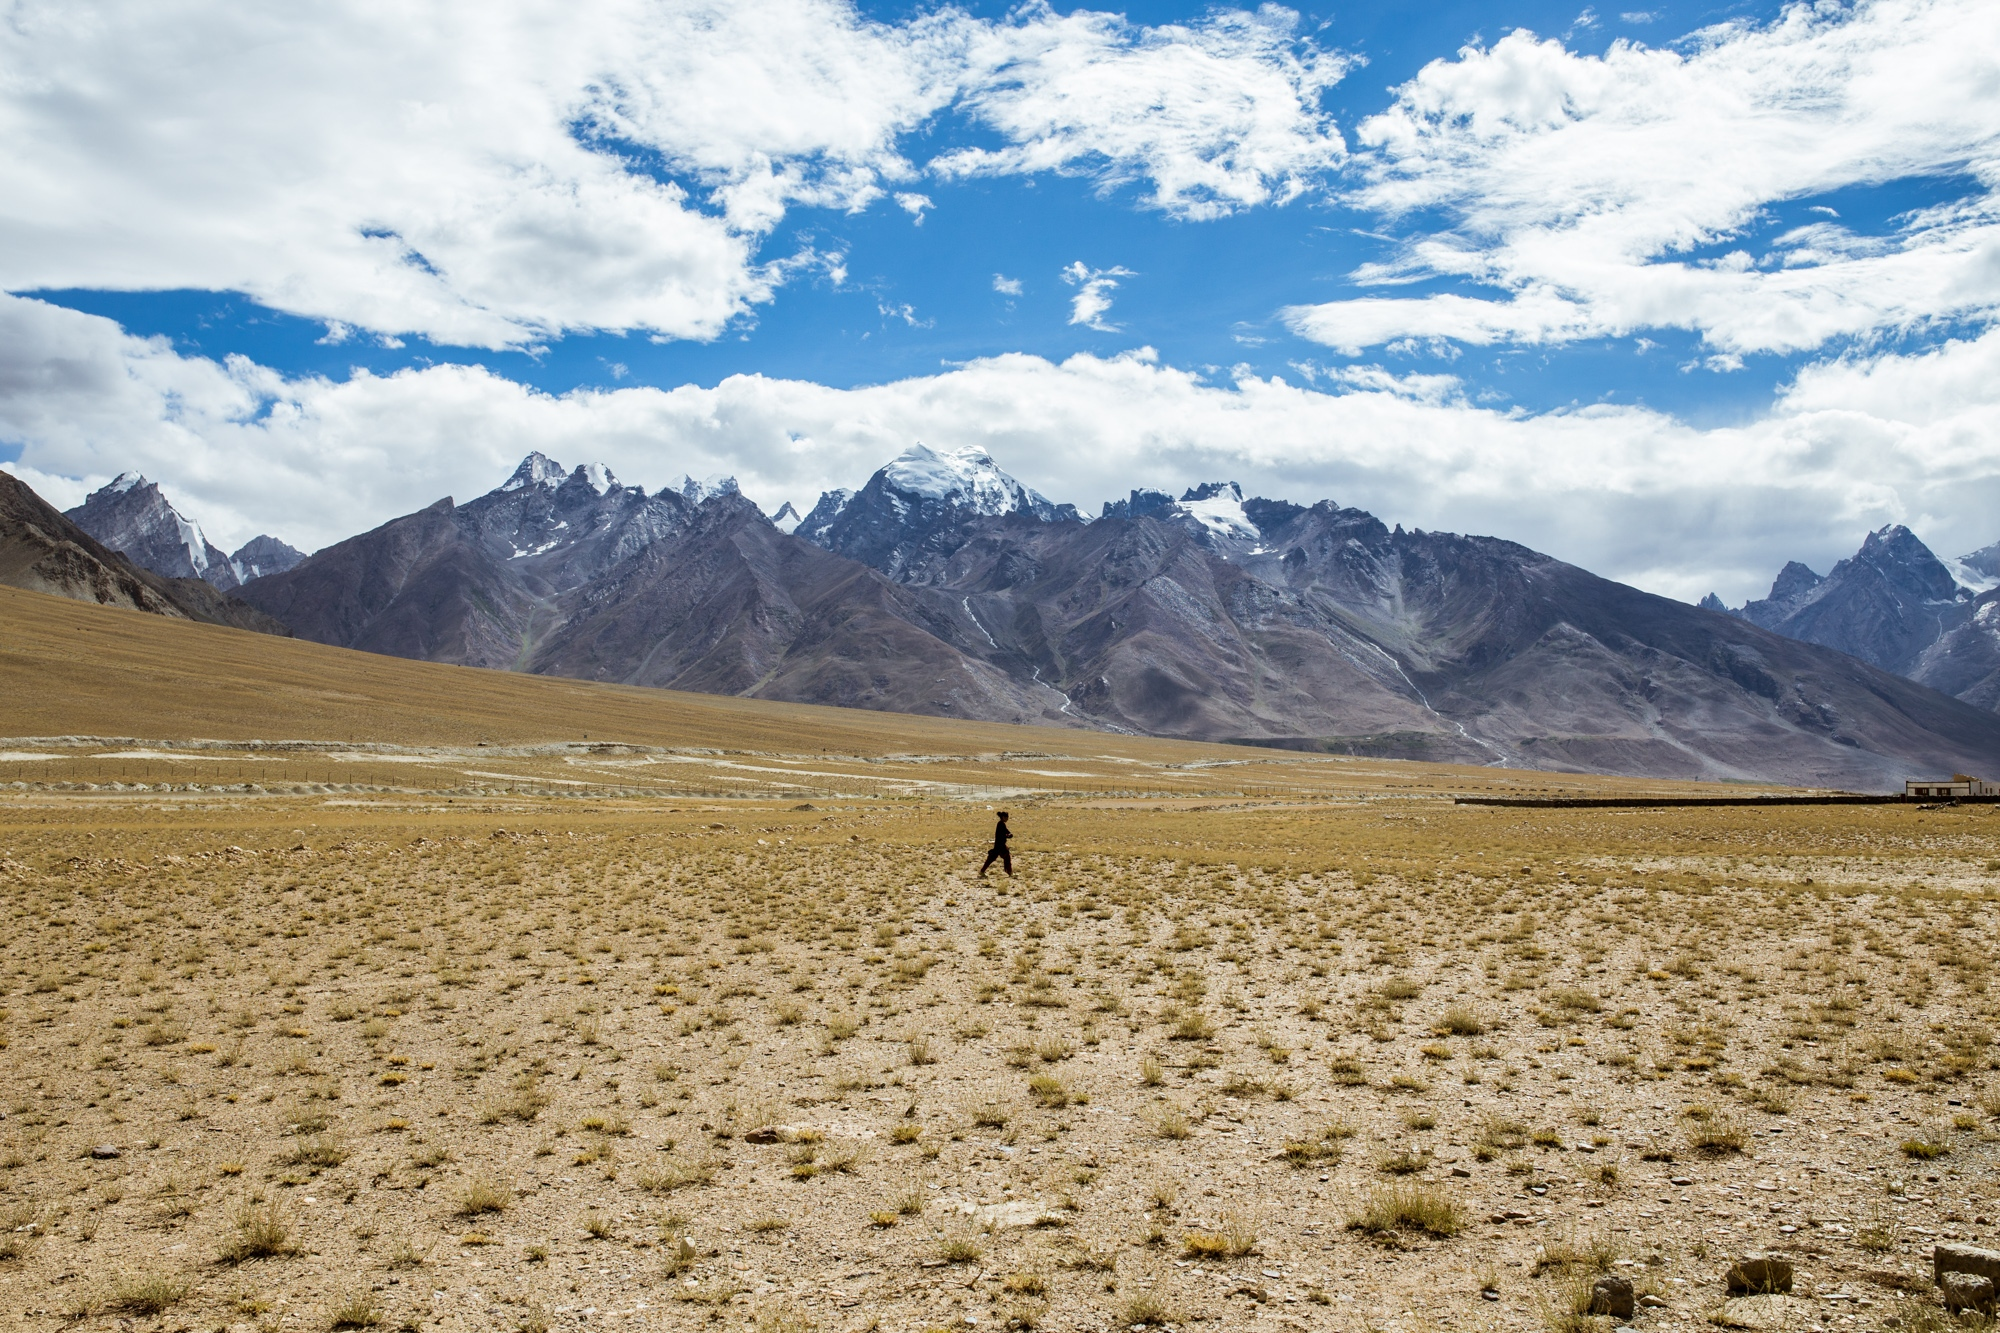 A woman walks home along the barren landscape in the Zanskar Valley, India. This area was chosen as a relocation zone for the village of Kumik due to water shortages in their old village. However, the new area faces similar issues.